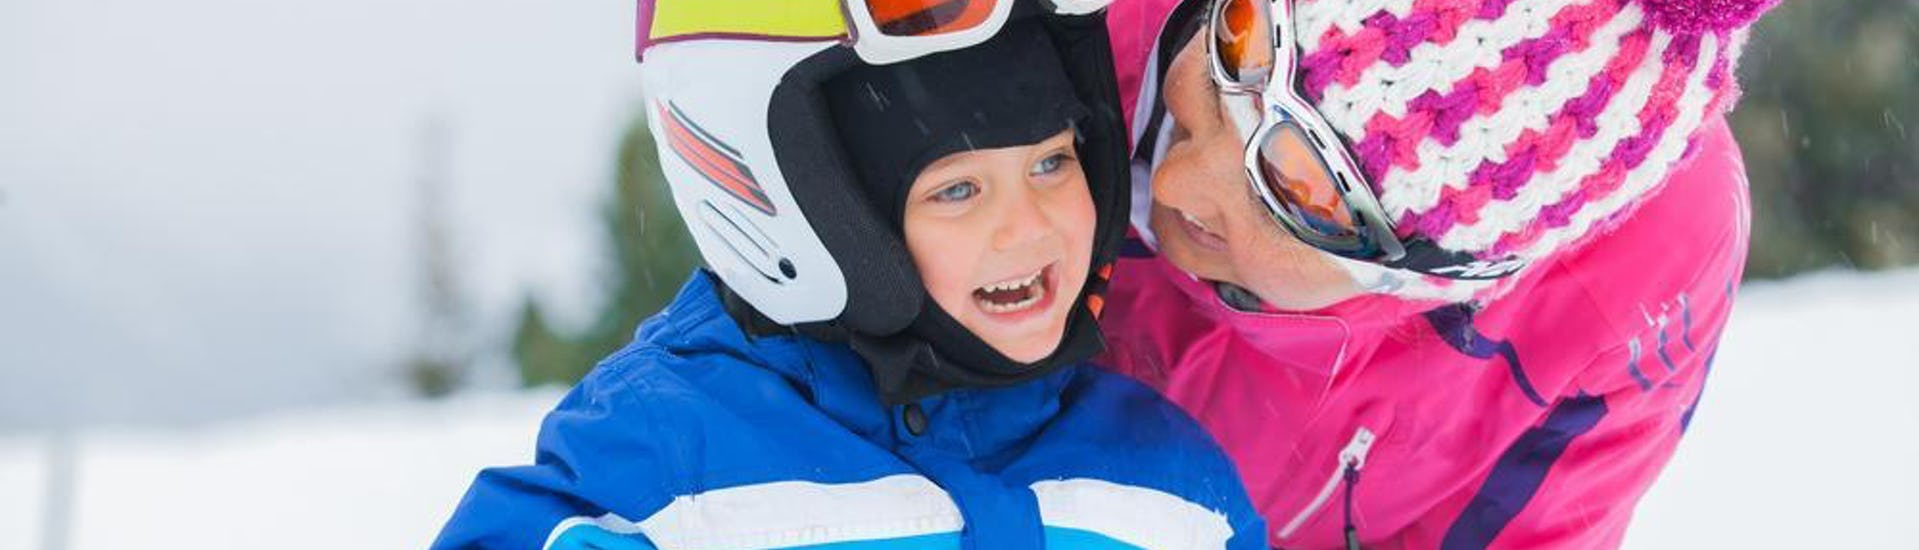 A ski instructor from Schneesportschule Morgenstern and her pupil are having fun during Private Ski Lessons for Kids - All Levels.